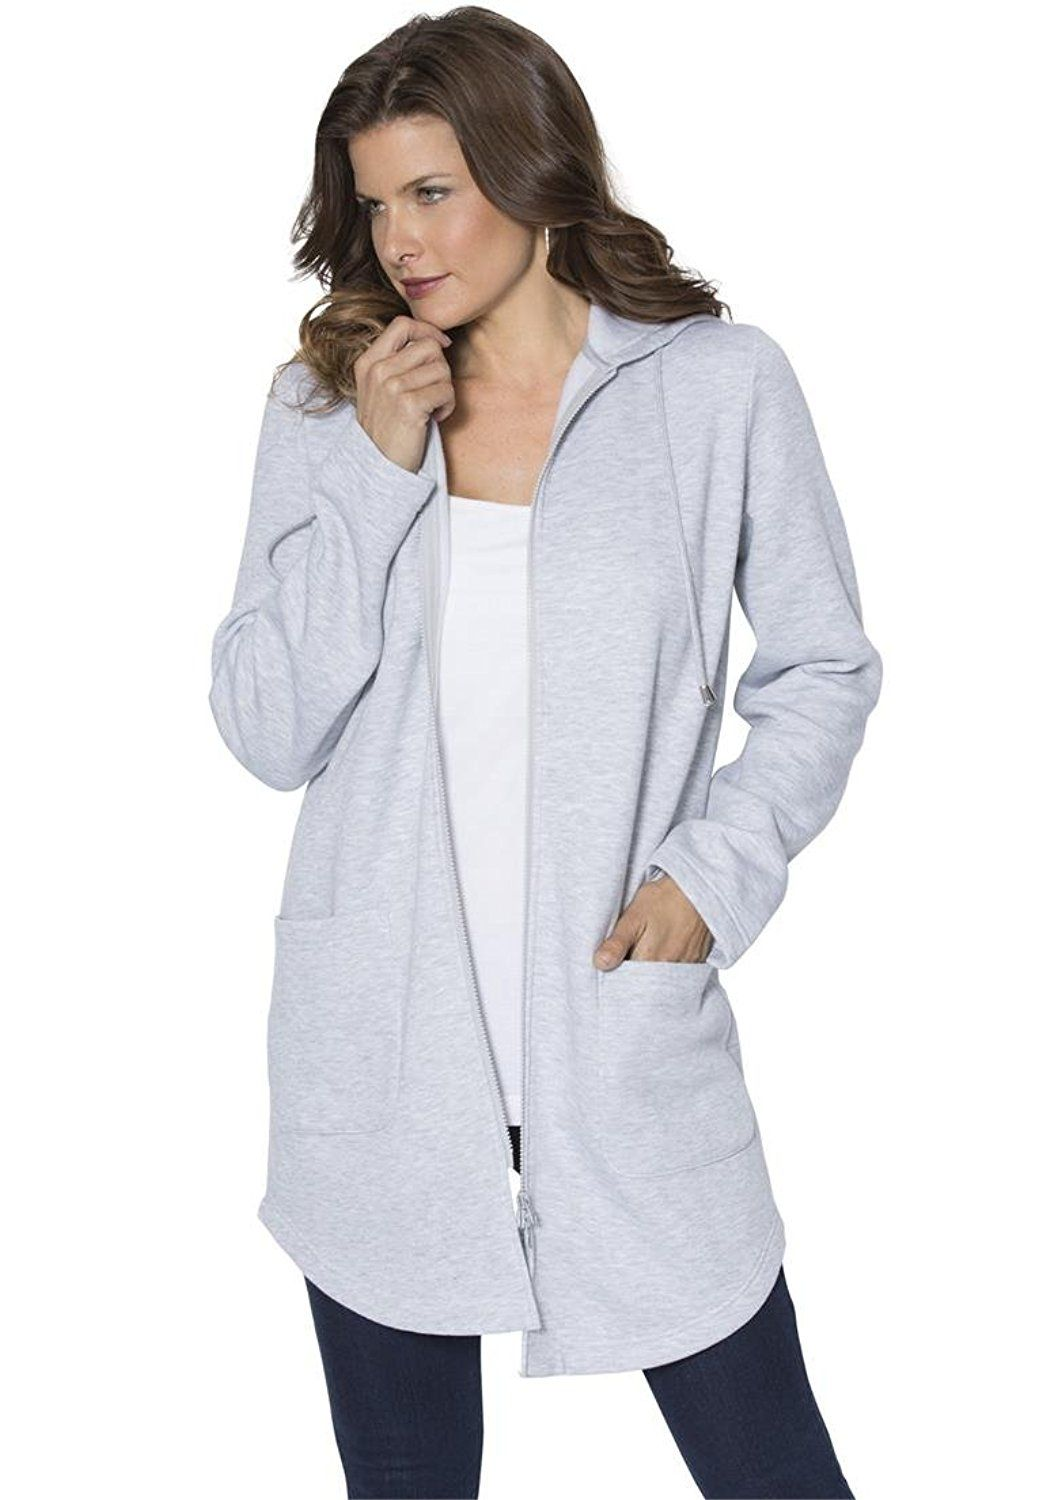 7cbad634513d2 Roamans Women s Plus Size Lightweight Fleece Jacket     This is an Amazon  Affiliate link. You can get additional details at the image link.